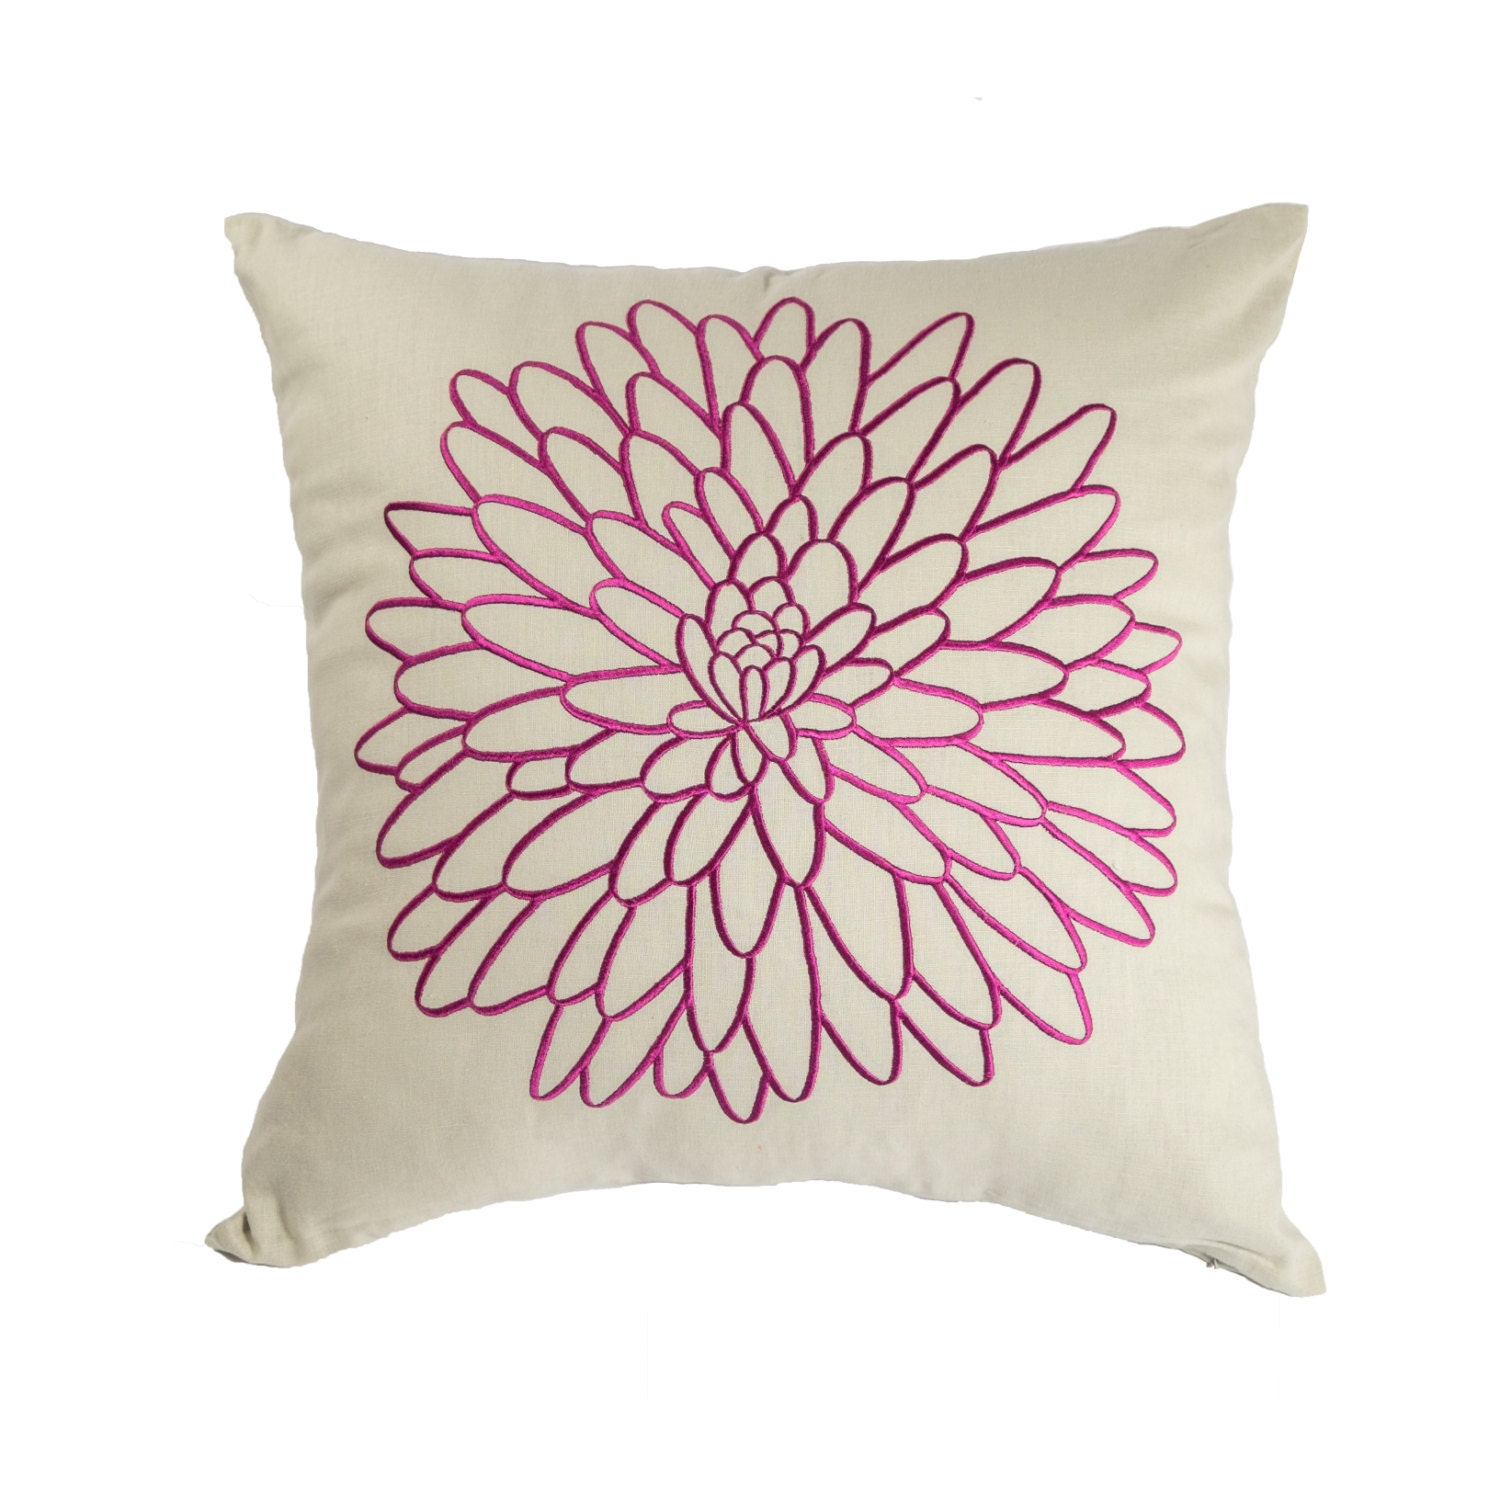 Decorative Floral Pillow Covers : Purple Floral Throw Pillow Cover Embroidered Pillow Oatmeal